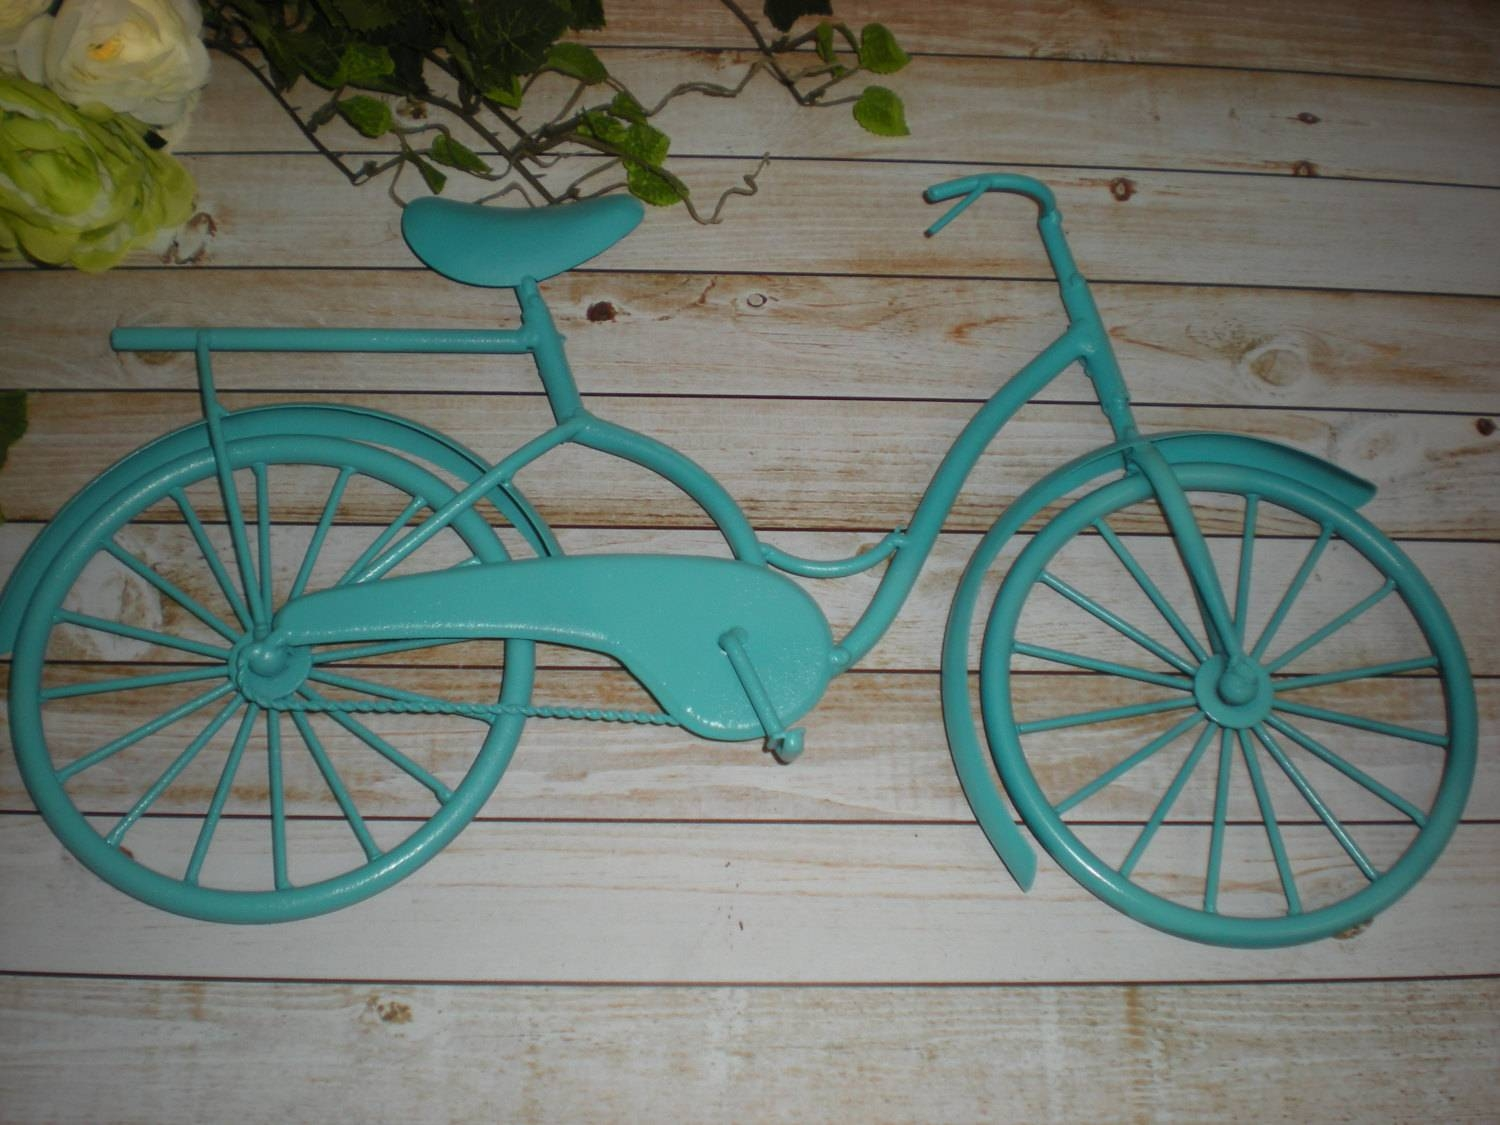 Winsome Metal Bicycle Wall Decor Bicycle Wall Art Wall Wrought Pertaining To Current Metal Bicycle Art (View 11 of 20)